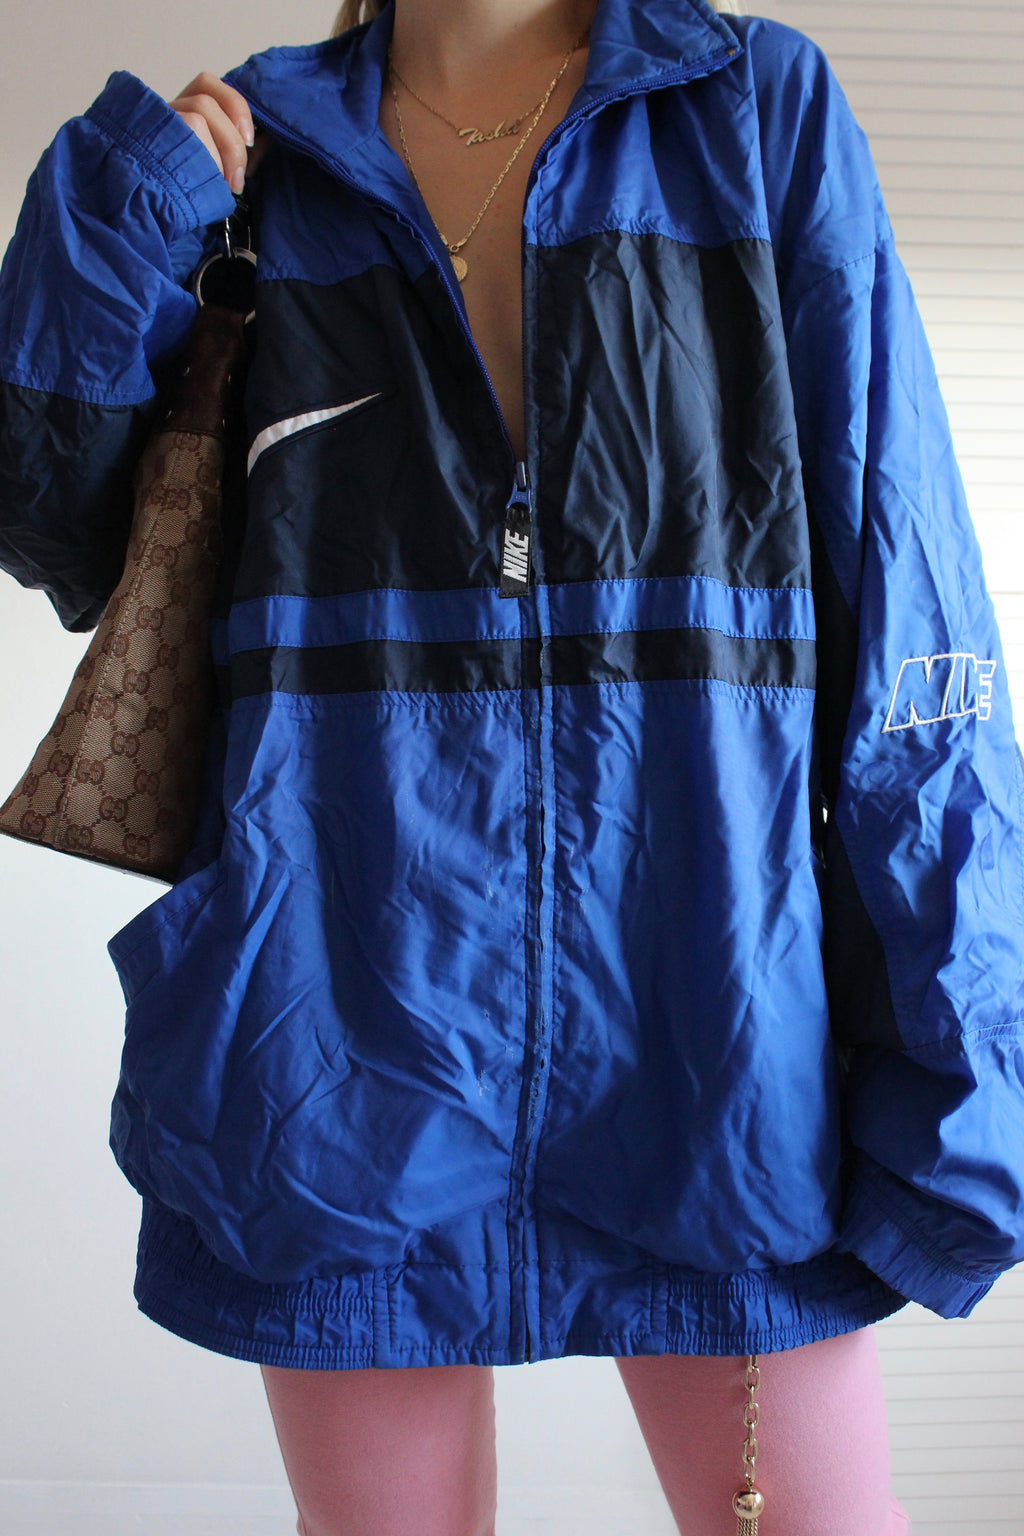 Vintage 90s Navy Blue Nike Zip Up Tracksuit Jacket